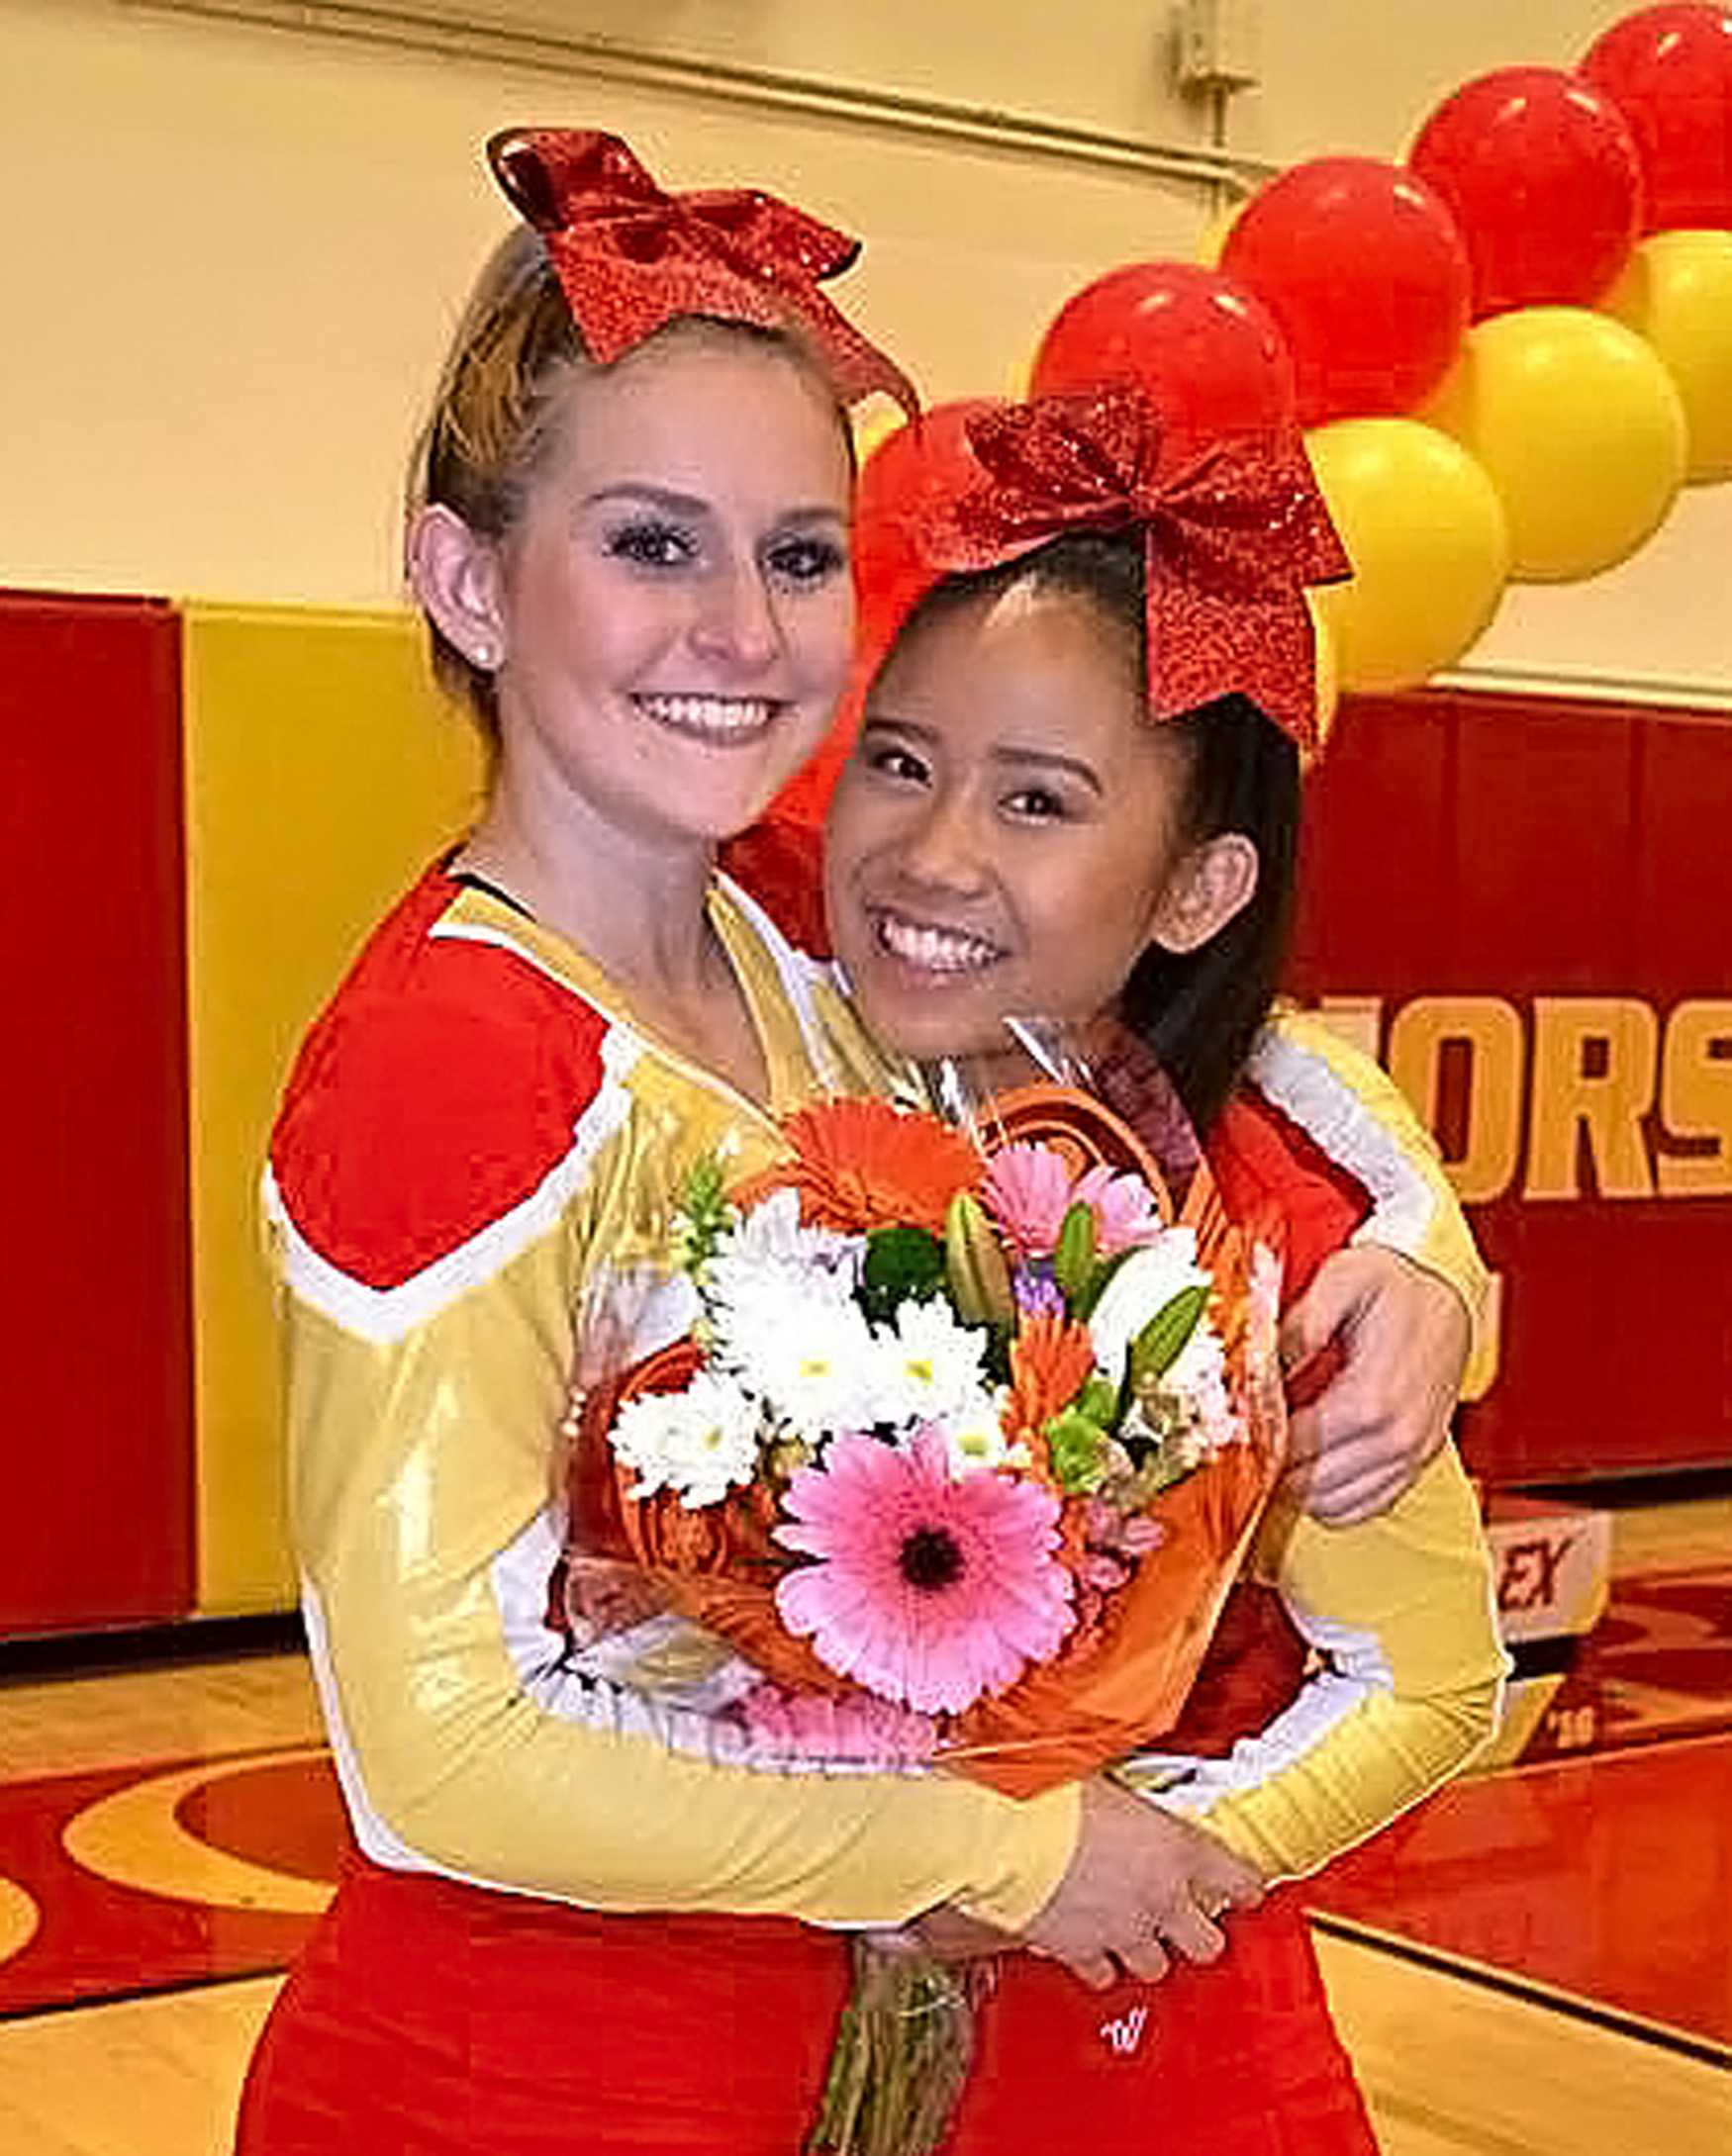 Senior Kayla Bunnell and sophomore Danielle Lee warmly embrace each other after the closing of the cheer showcase